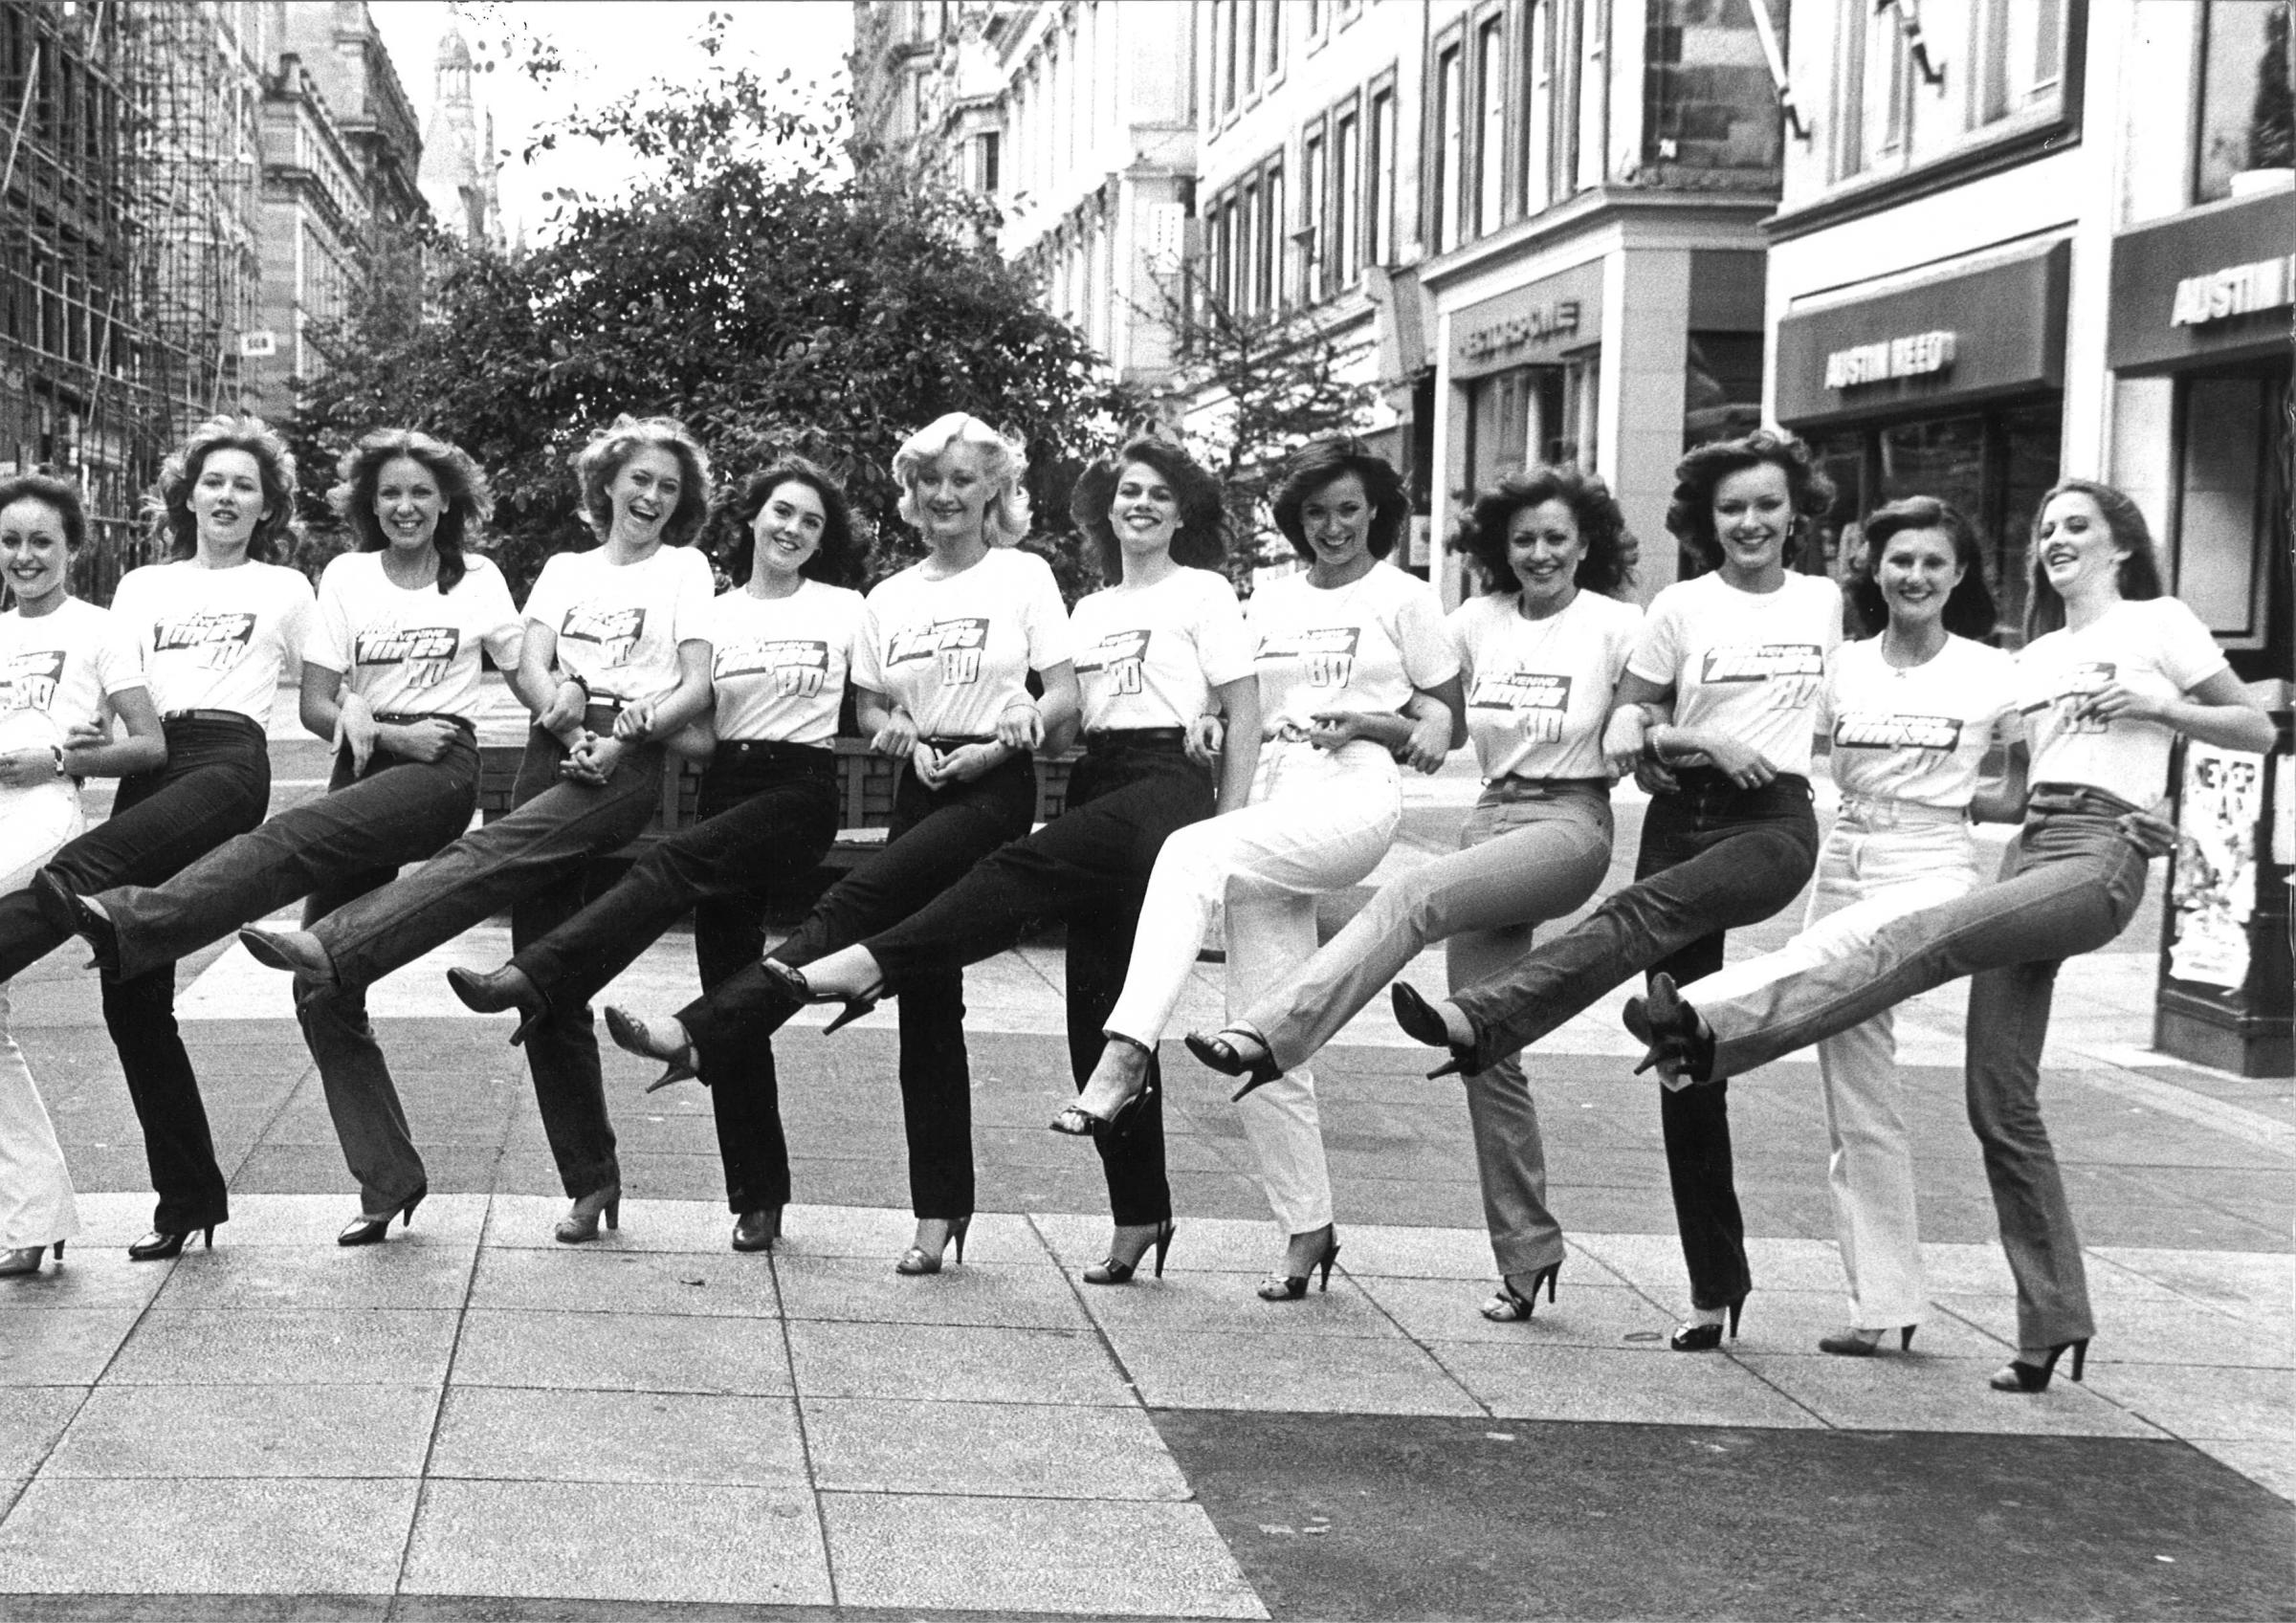 We had a look through the archives and found these great retro photos of Miss Evening Times contestants